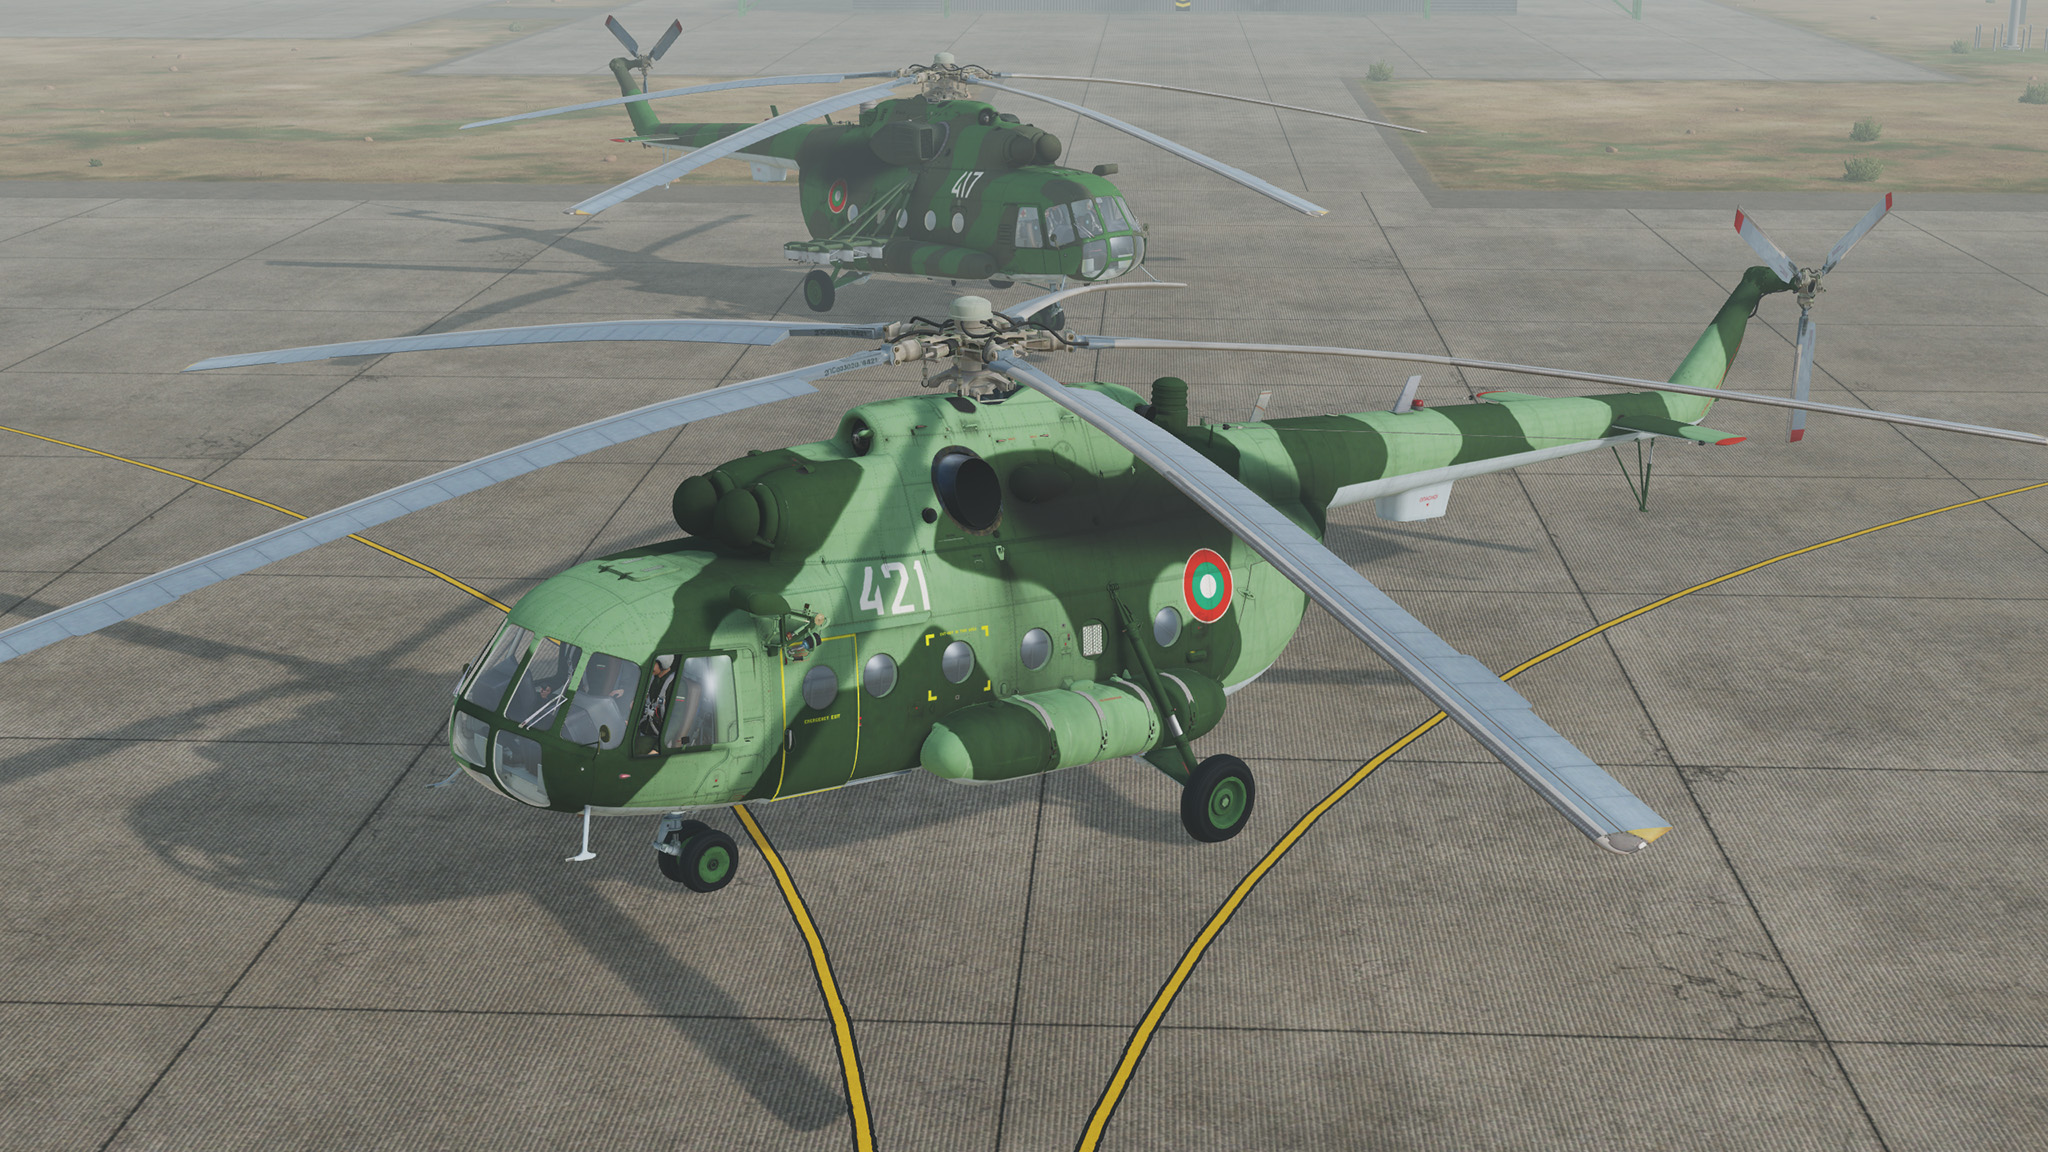 Mi-17 Bulgaria Air Force, tact. number 417 and 421